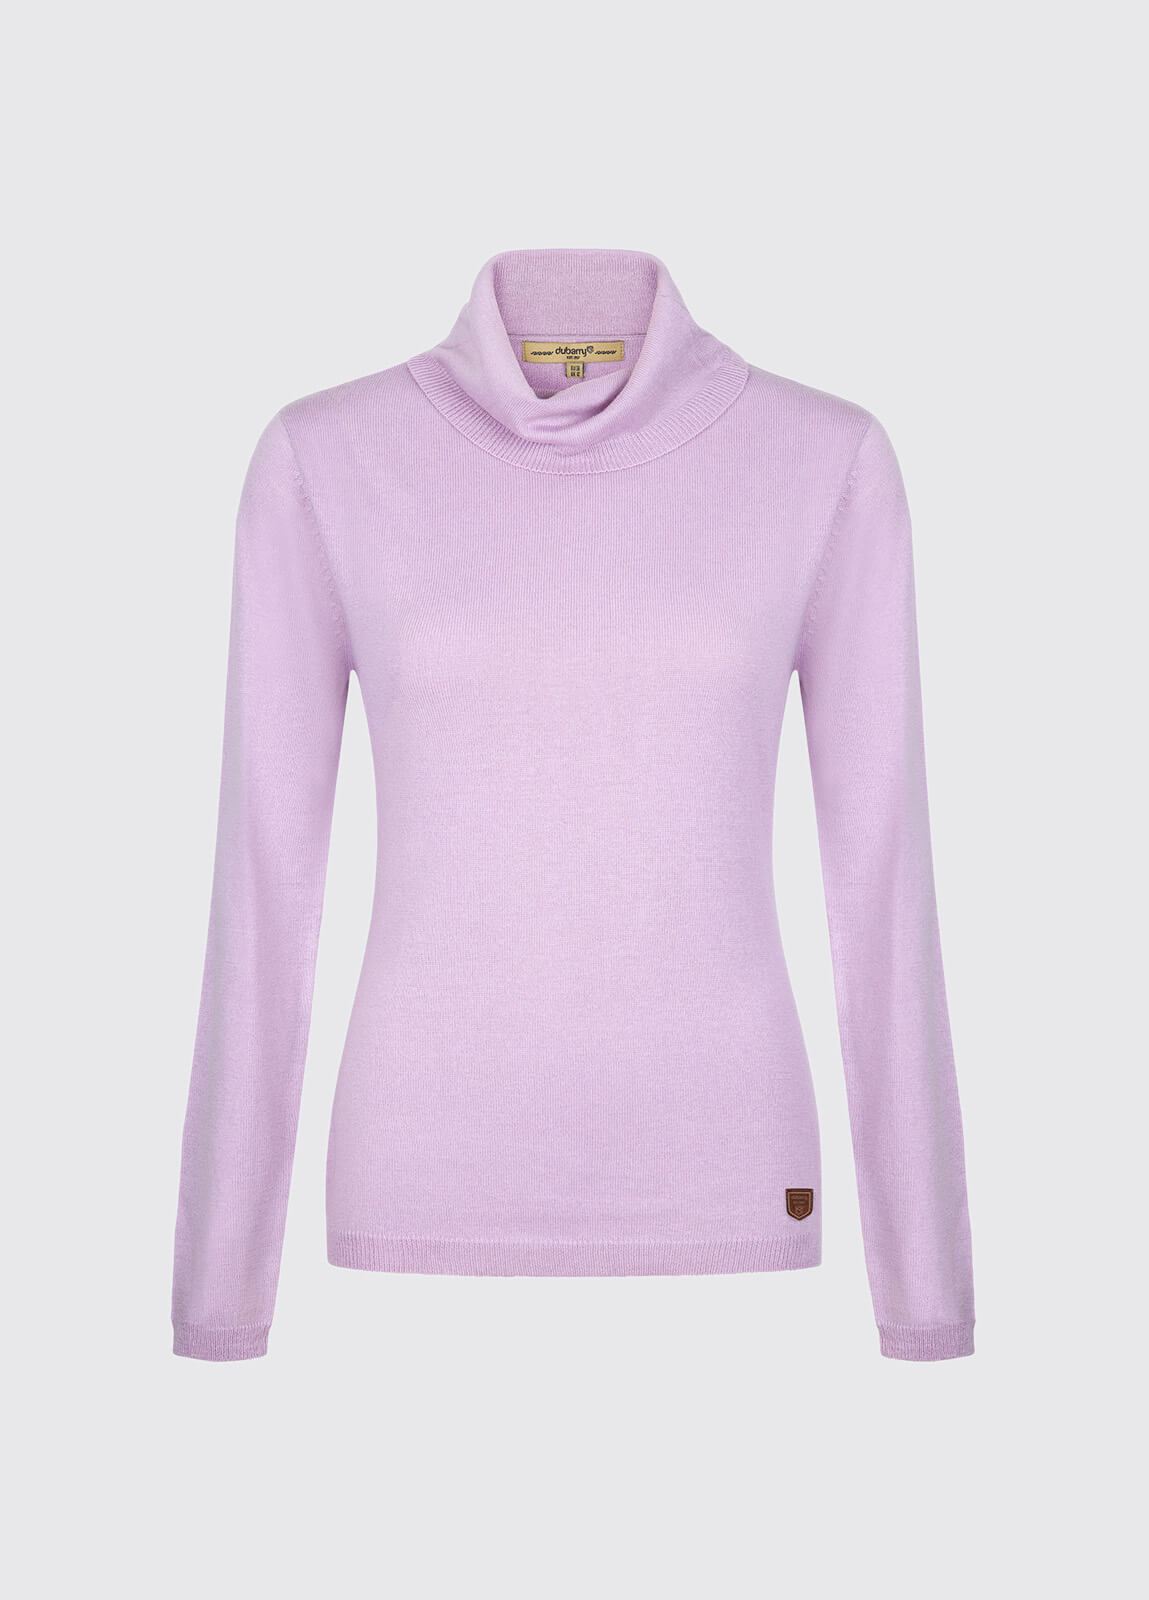 Redmond Classic Roll Neck Knitted Sweater - Lilac